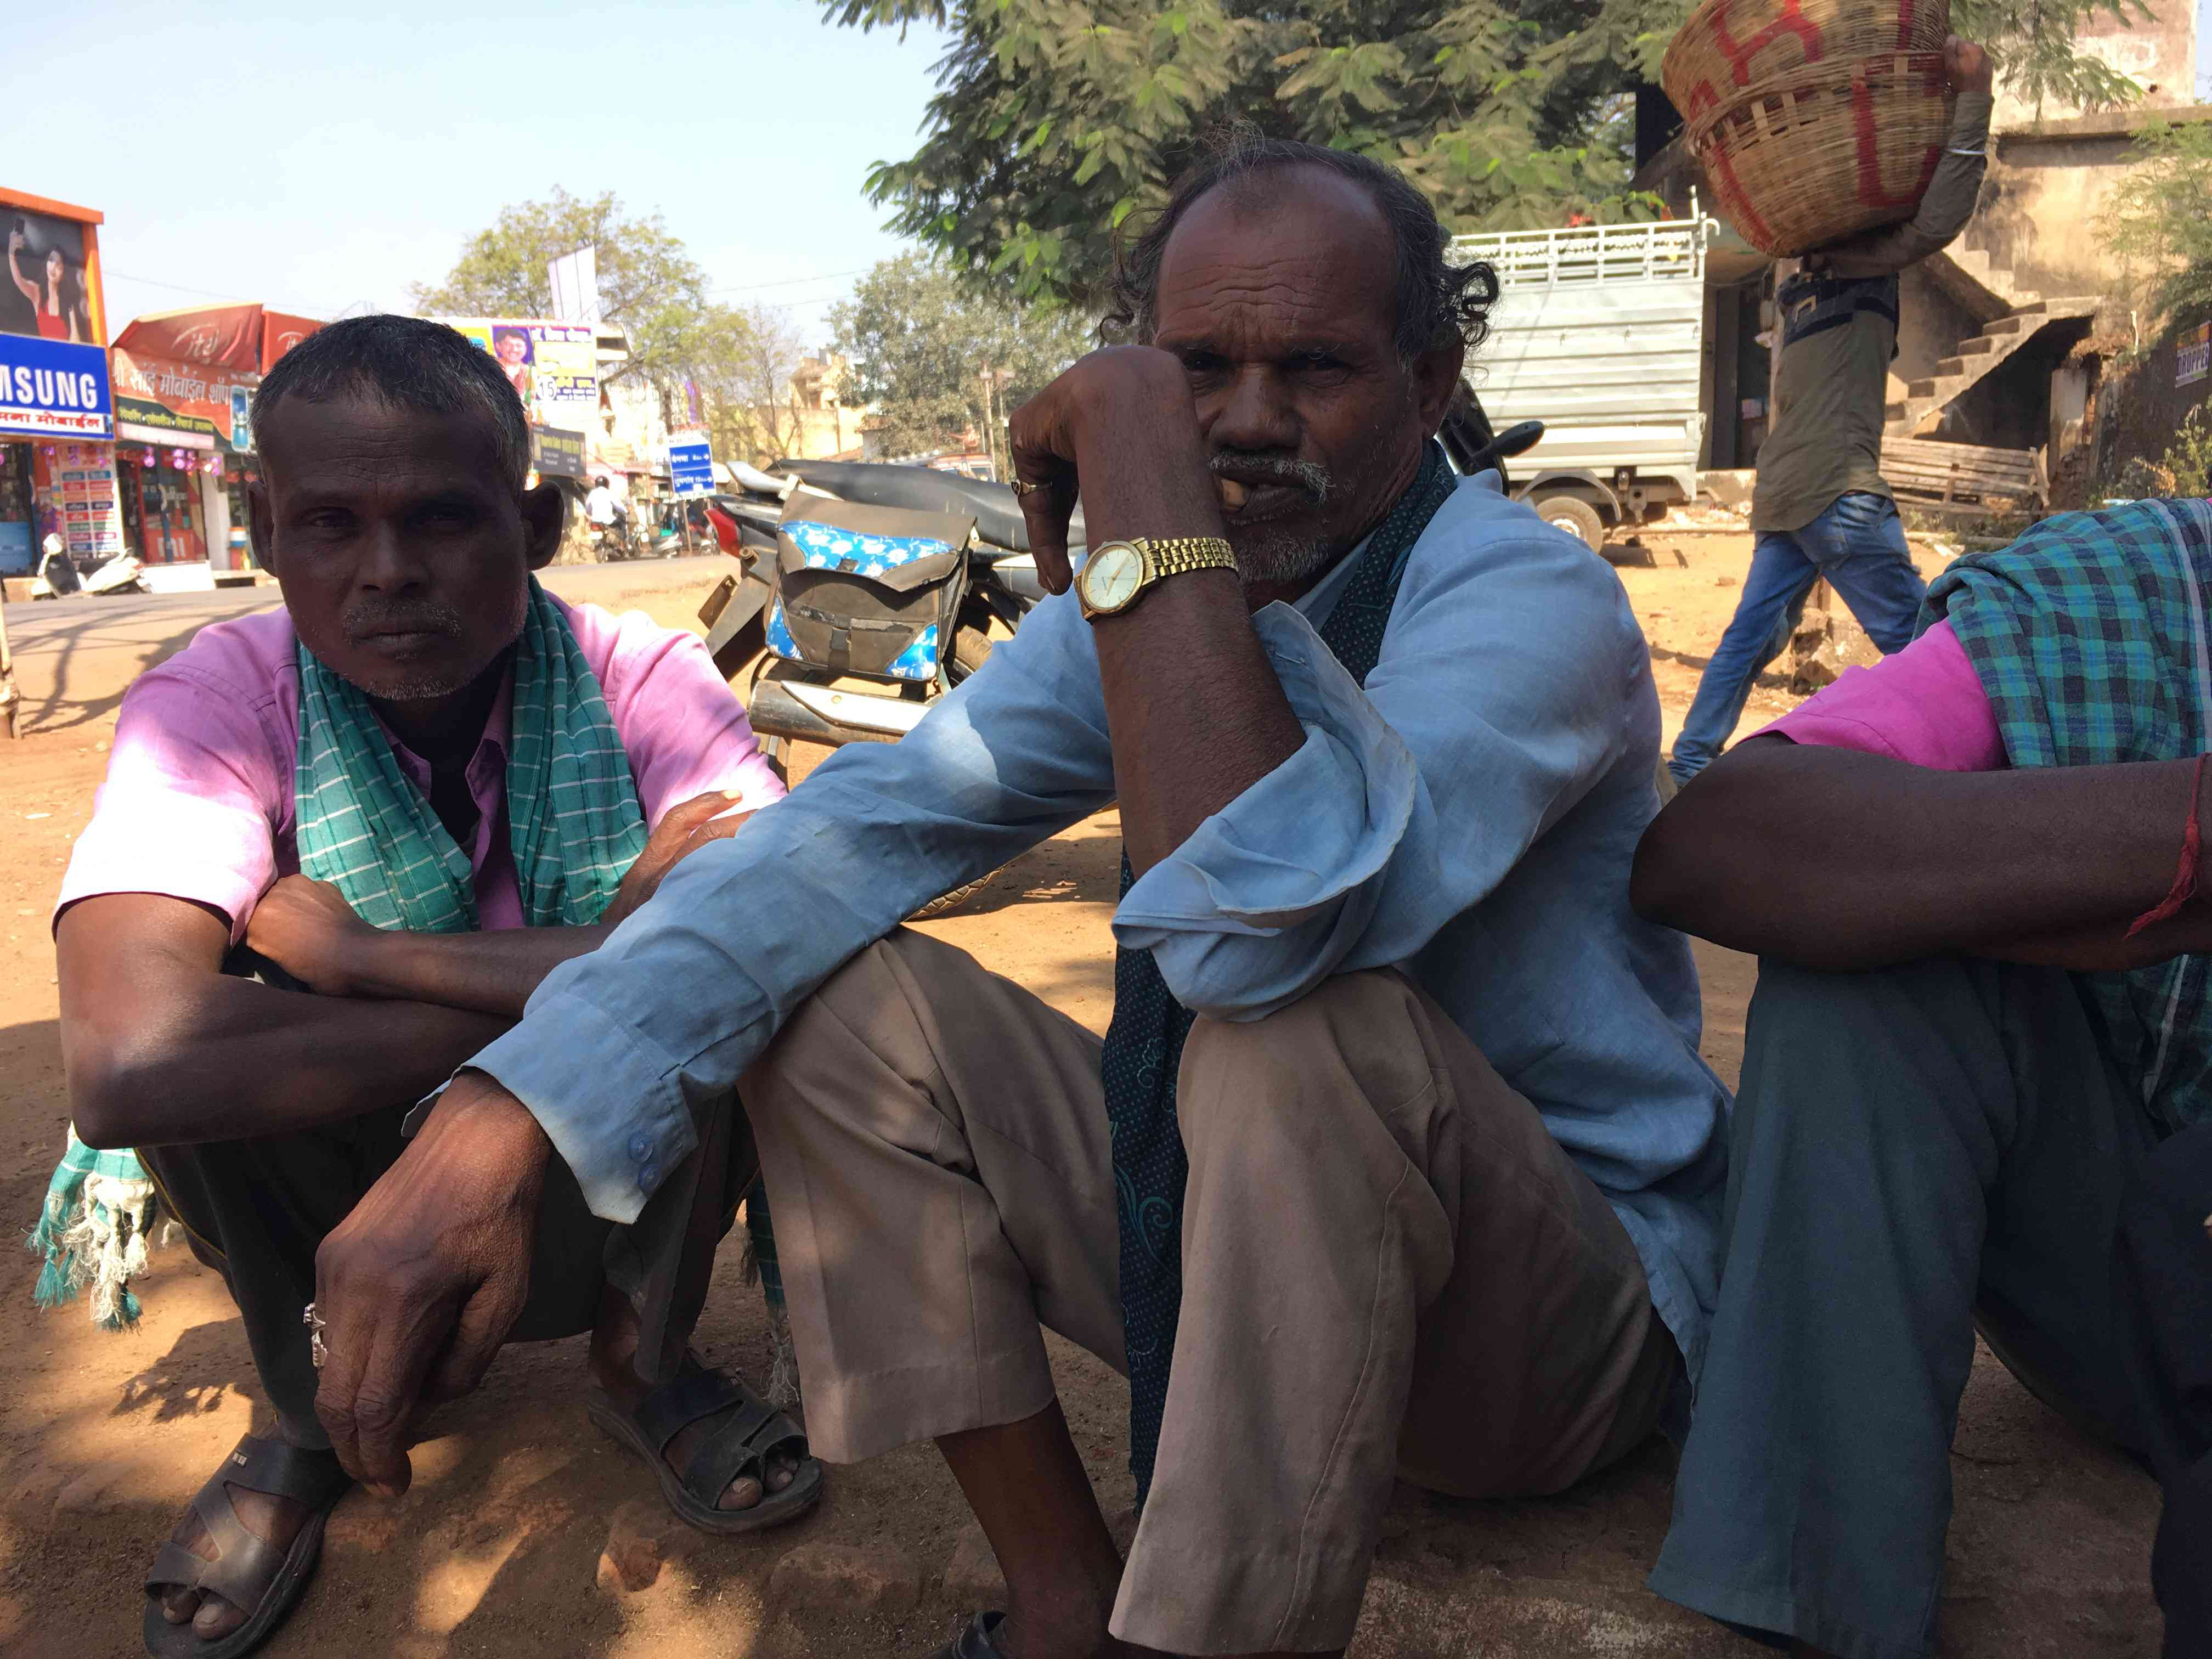 Daily wage labourers wait for work in Mahasamund town. They said work for them has almost dried up since Diwali. Photo credit: Akash Bisht